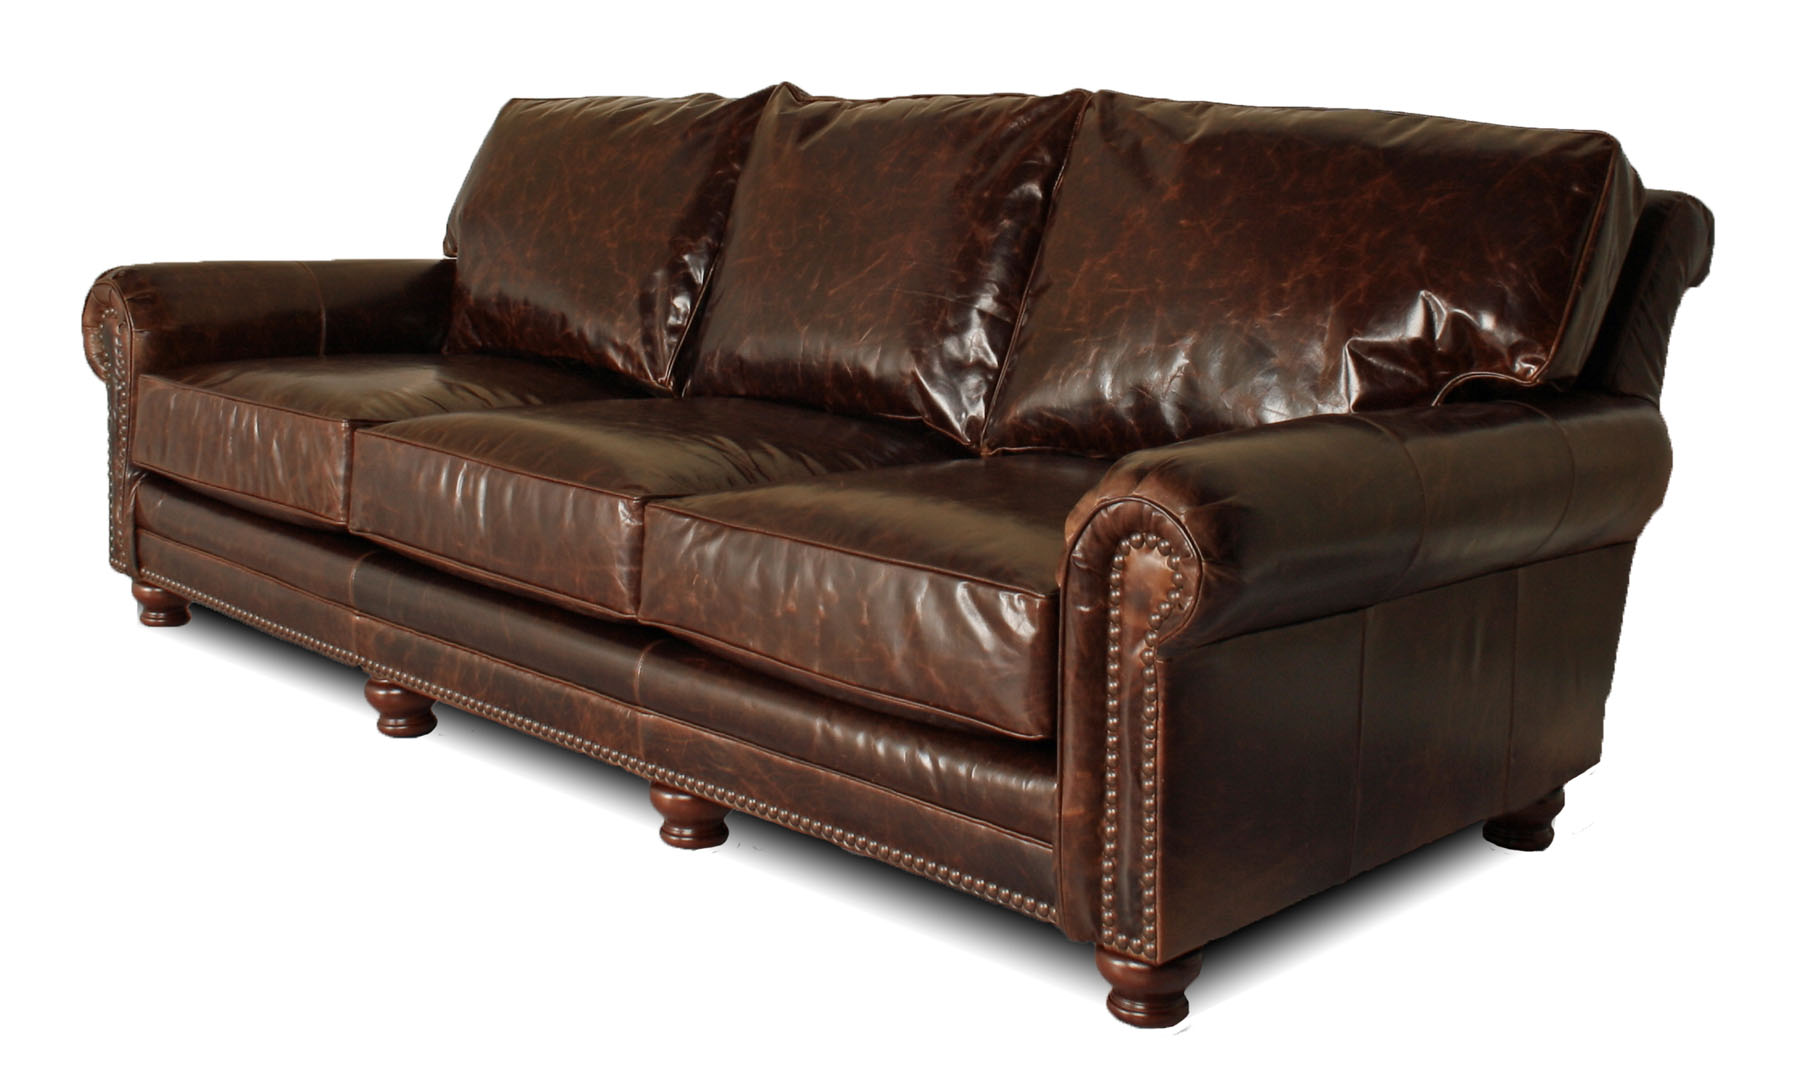 Kingston Deep Leather Furniture